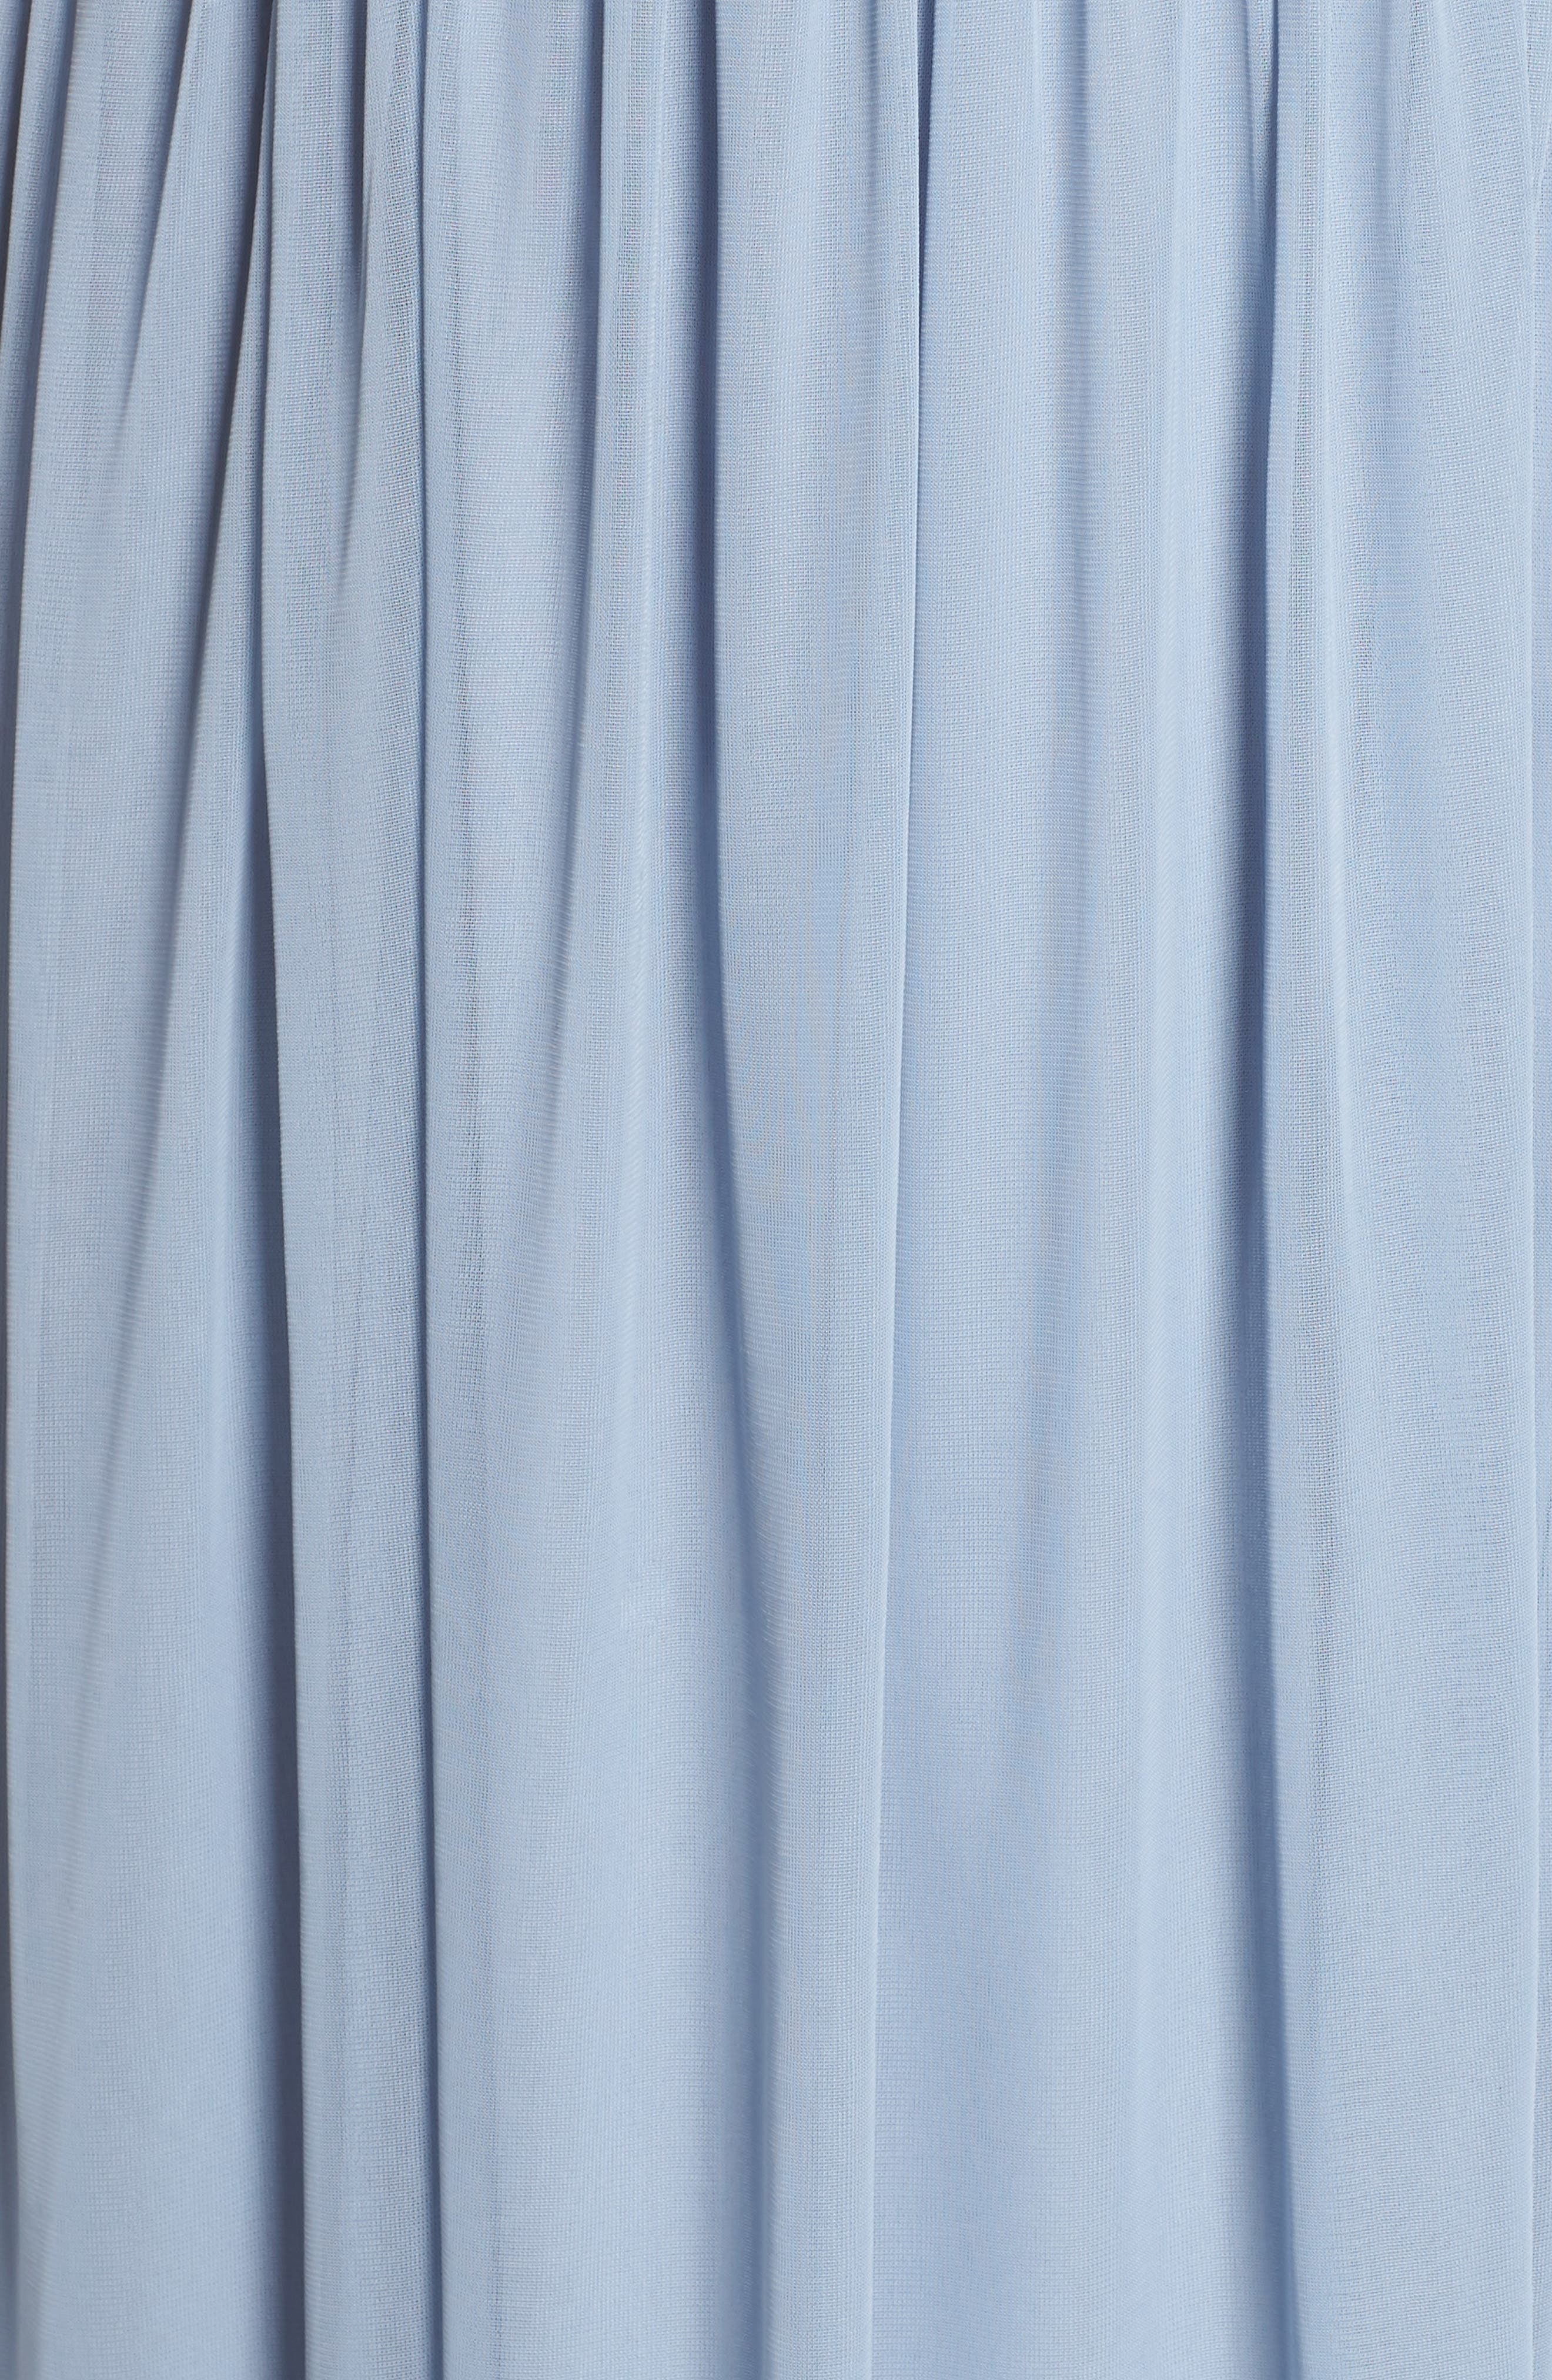 ADRIANNA PAPELL,                             Tulle Gown,                             Alternate thumbnail 5, color,                             469